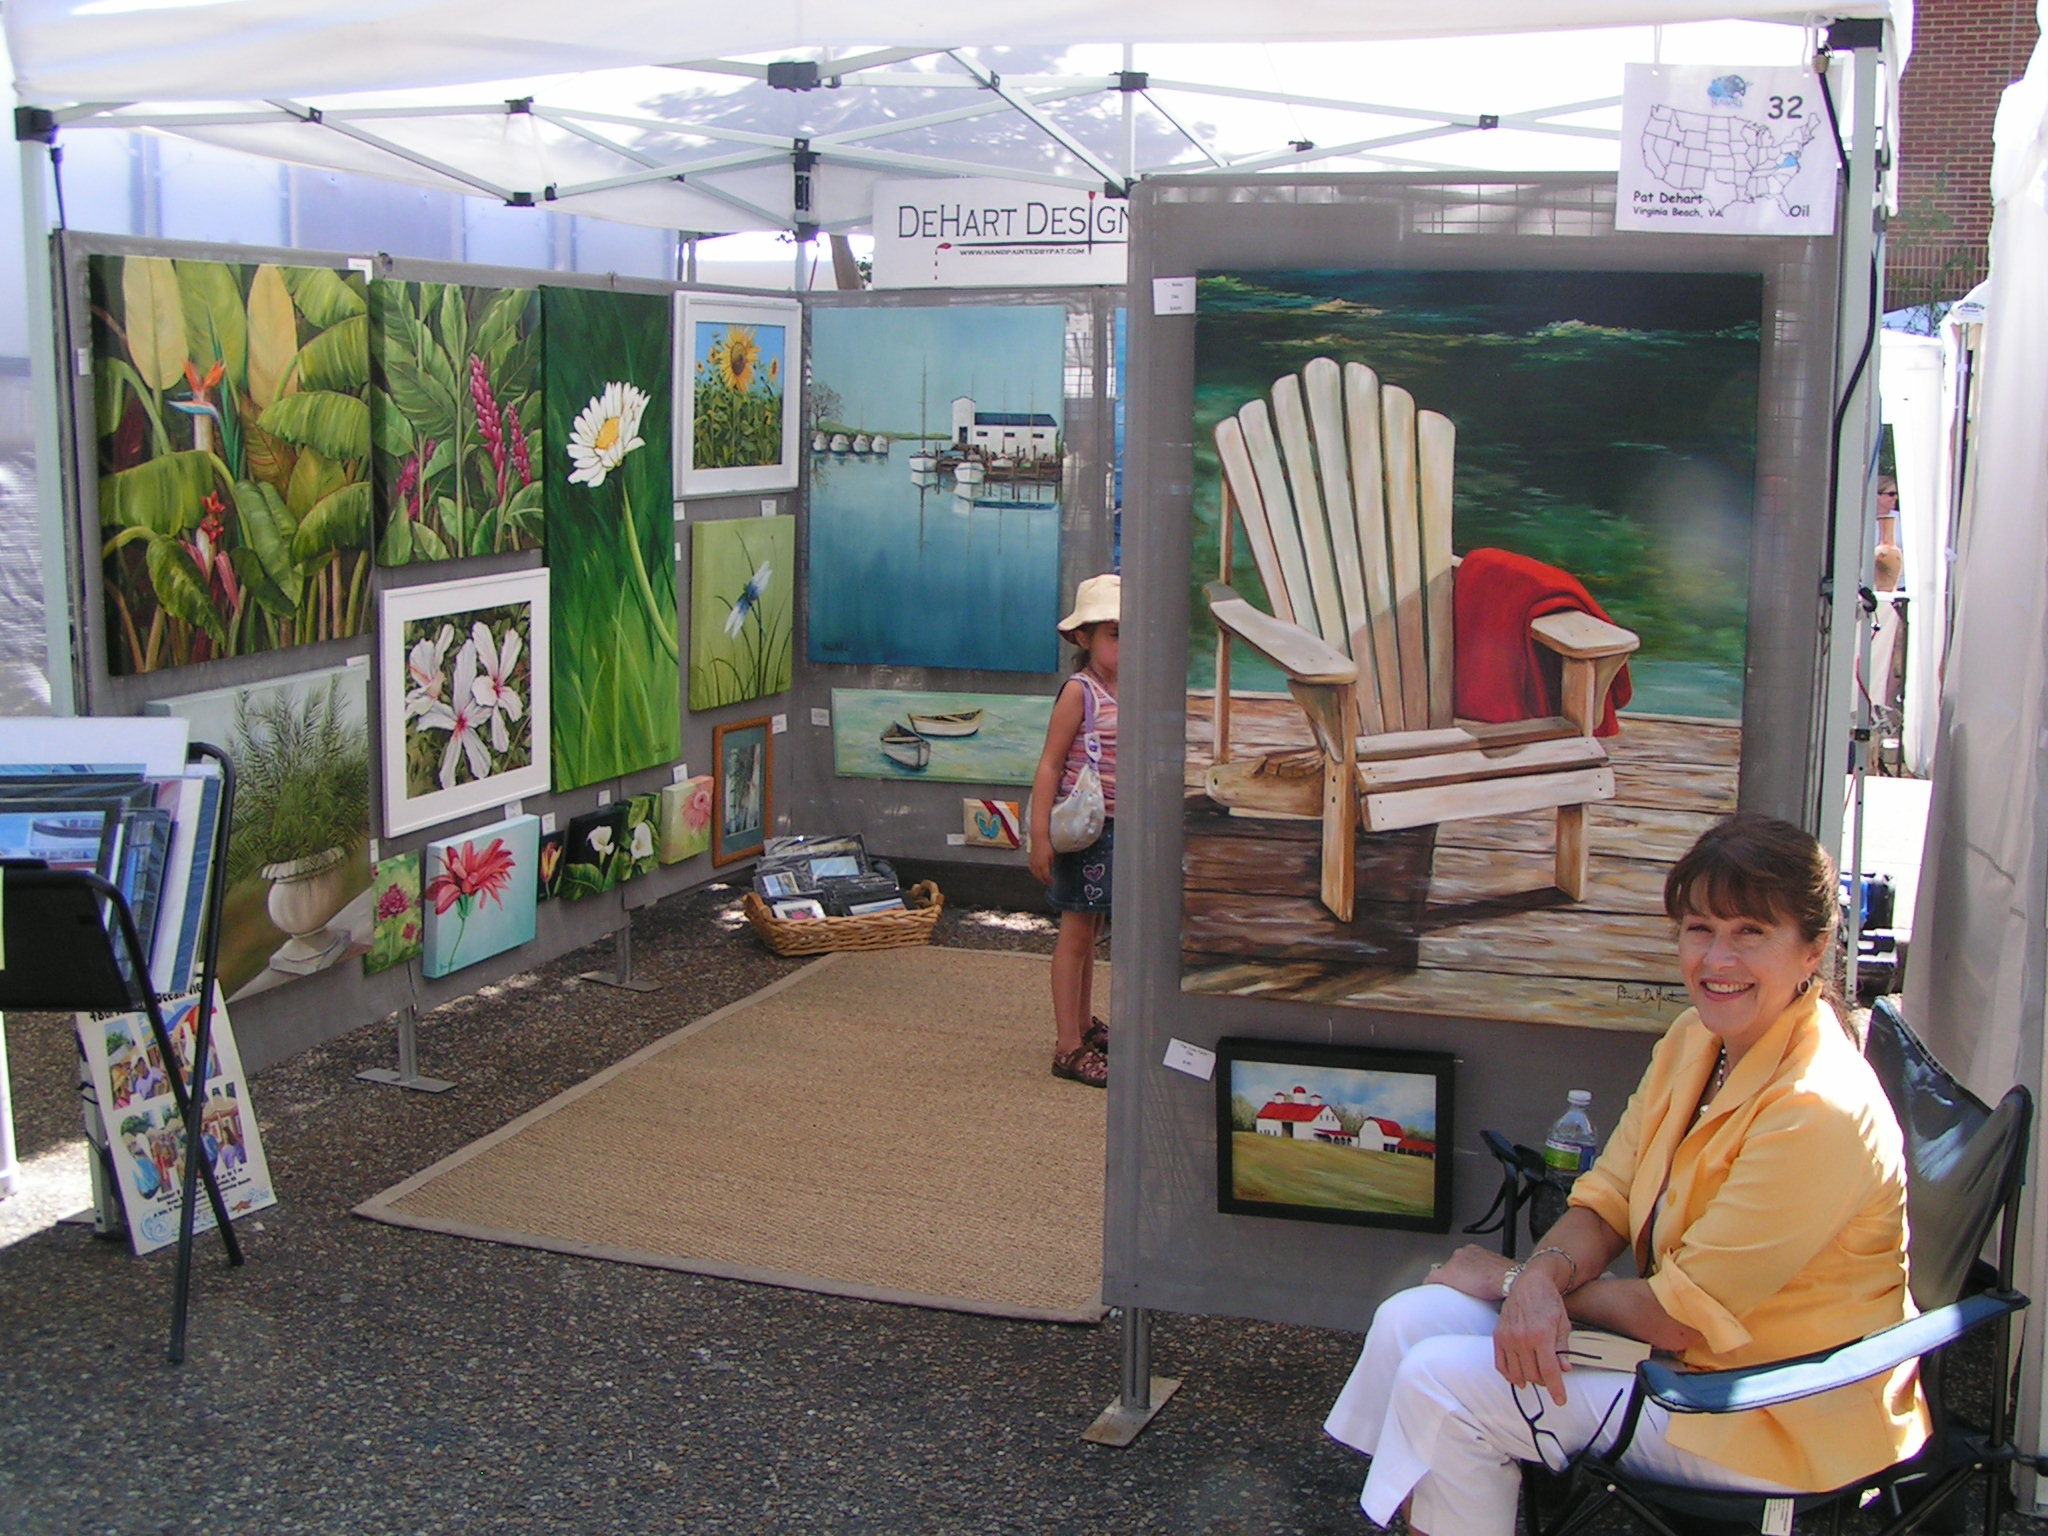 Seawall art show in portsmouth for Craft shows in hampton roads